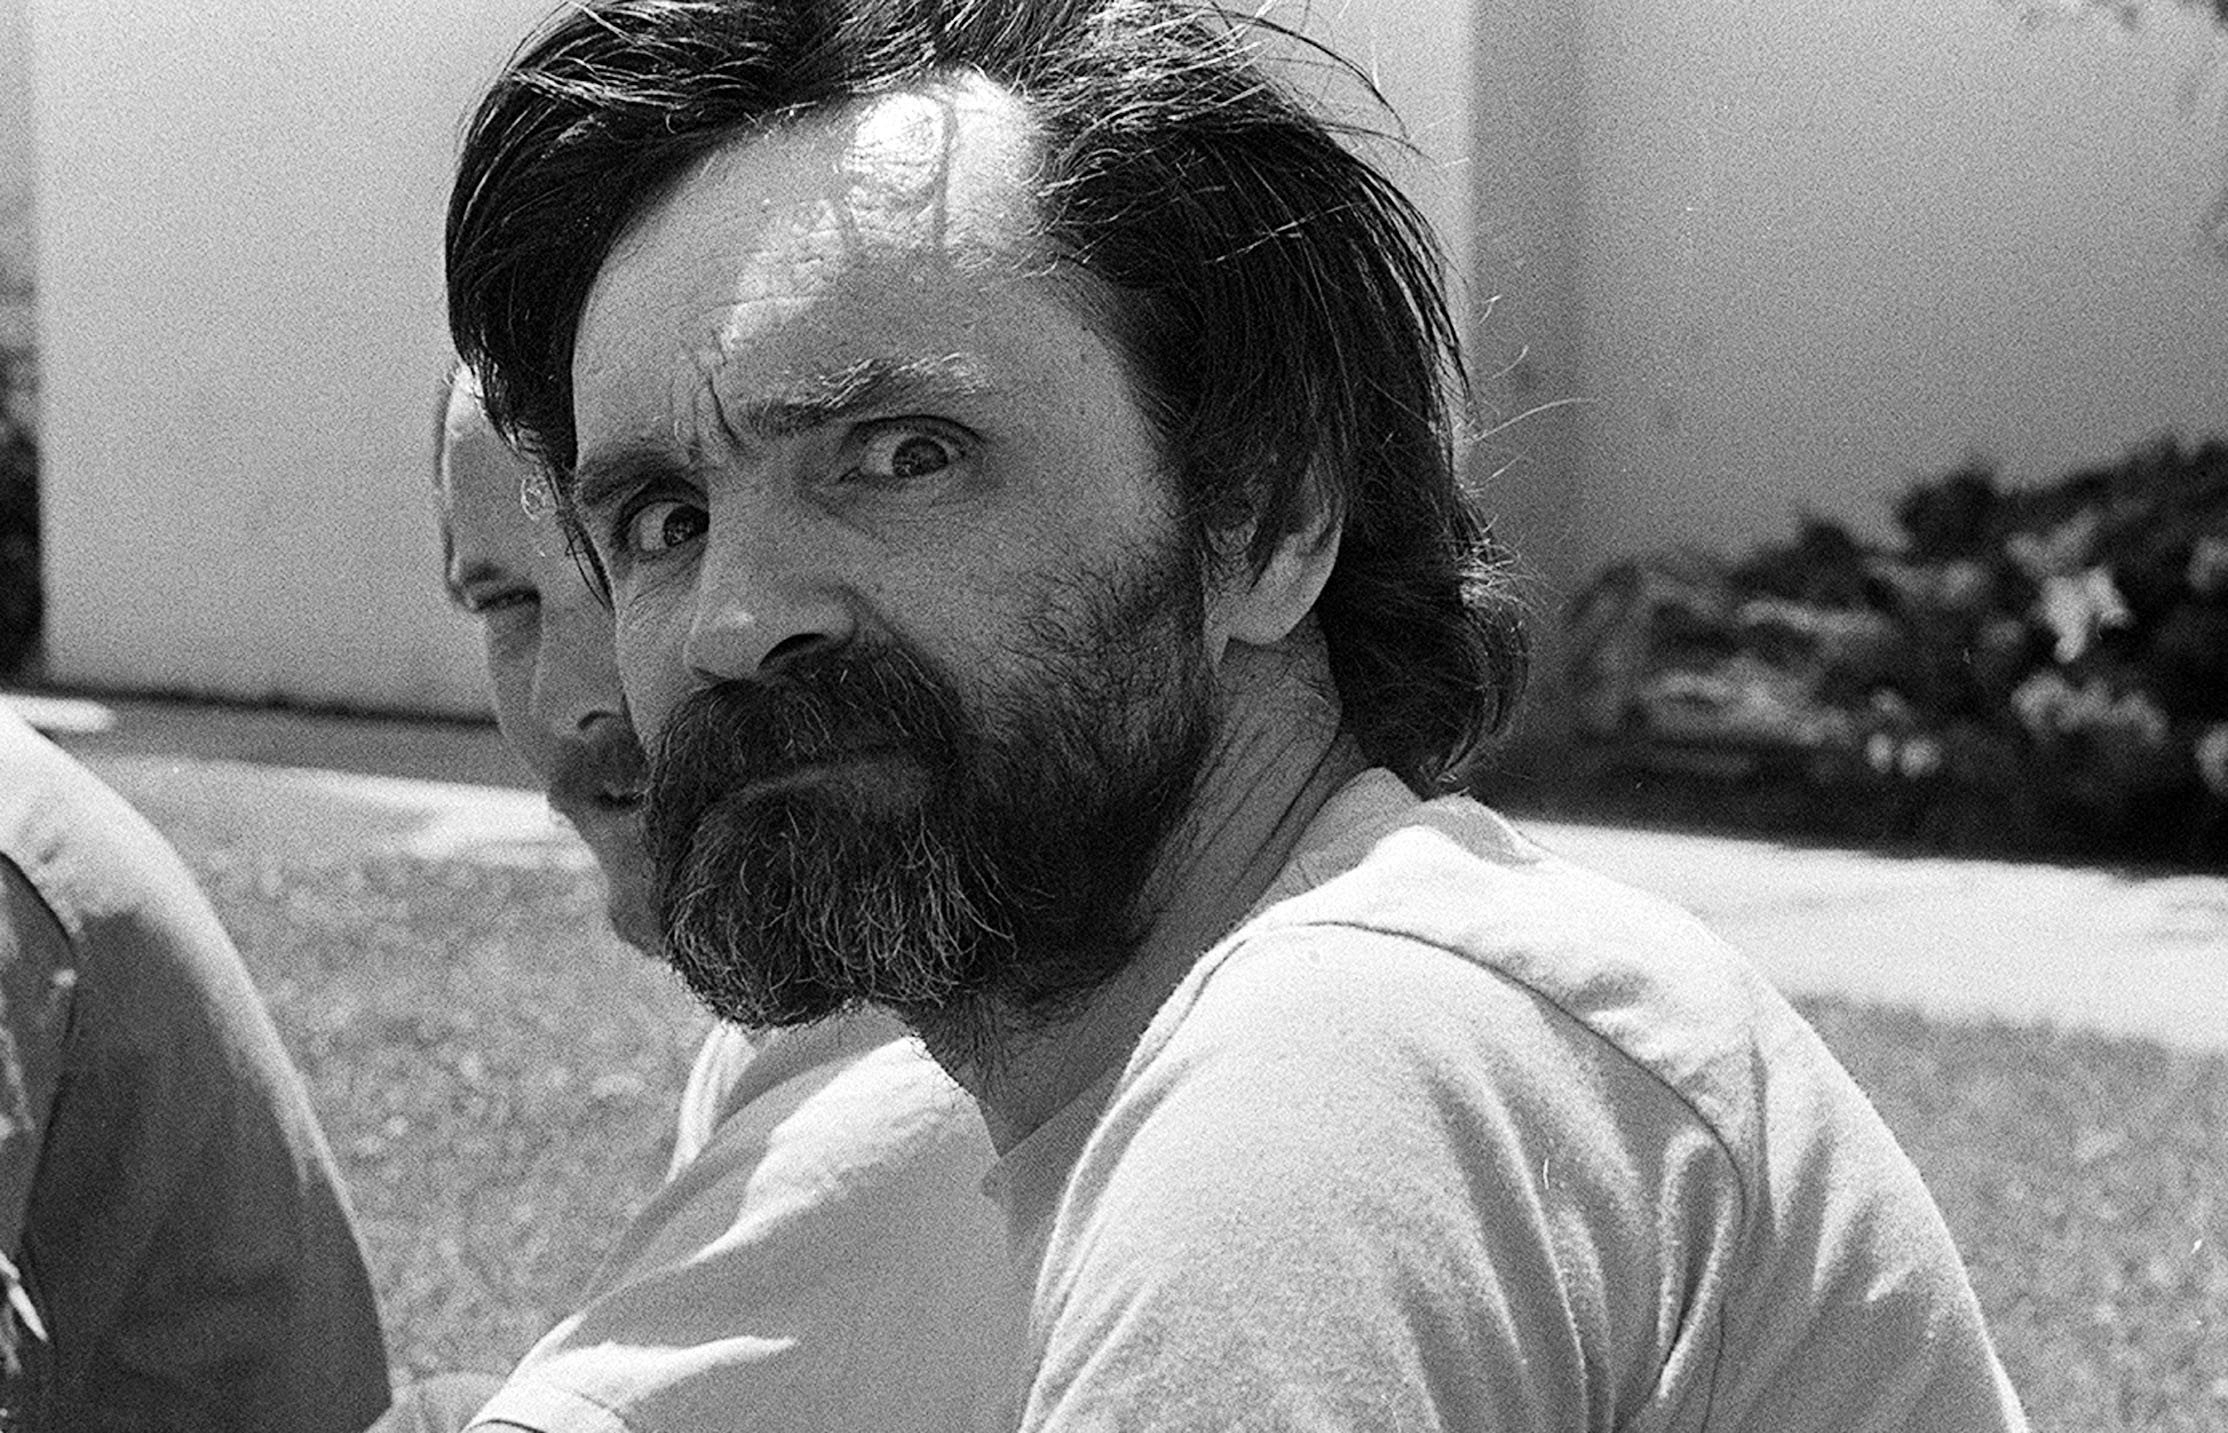 Charles Manson: Inside the Fight Over the Cult Leader's Remains